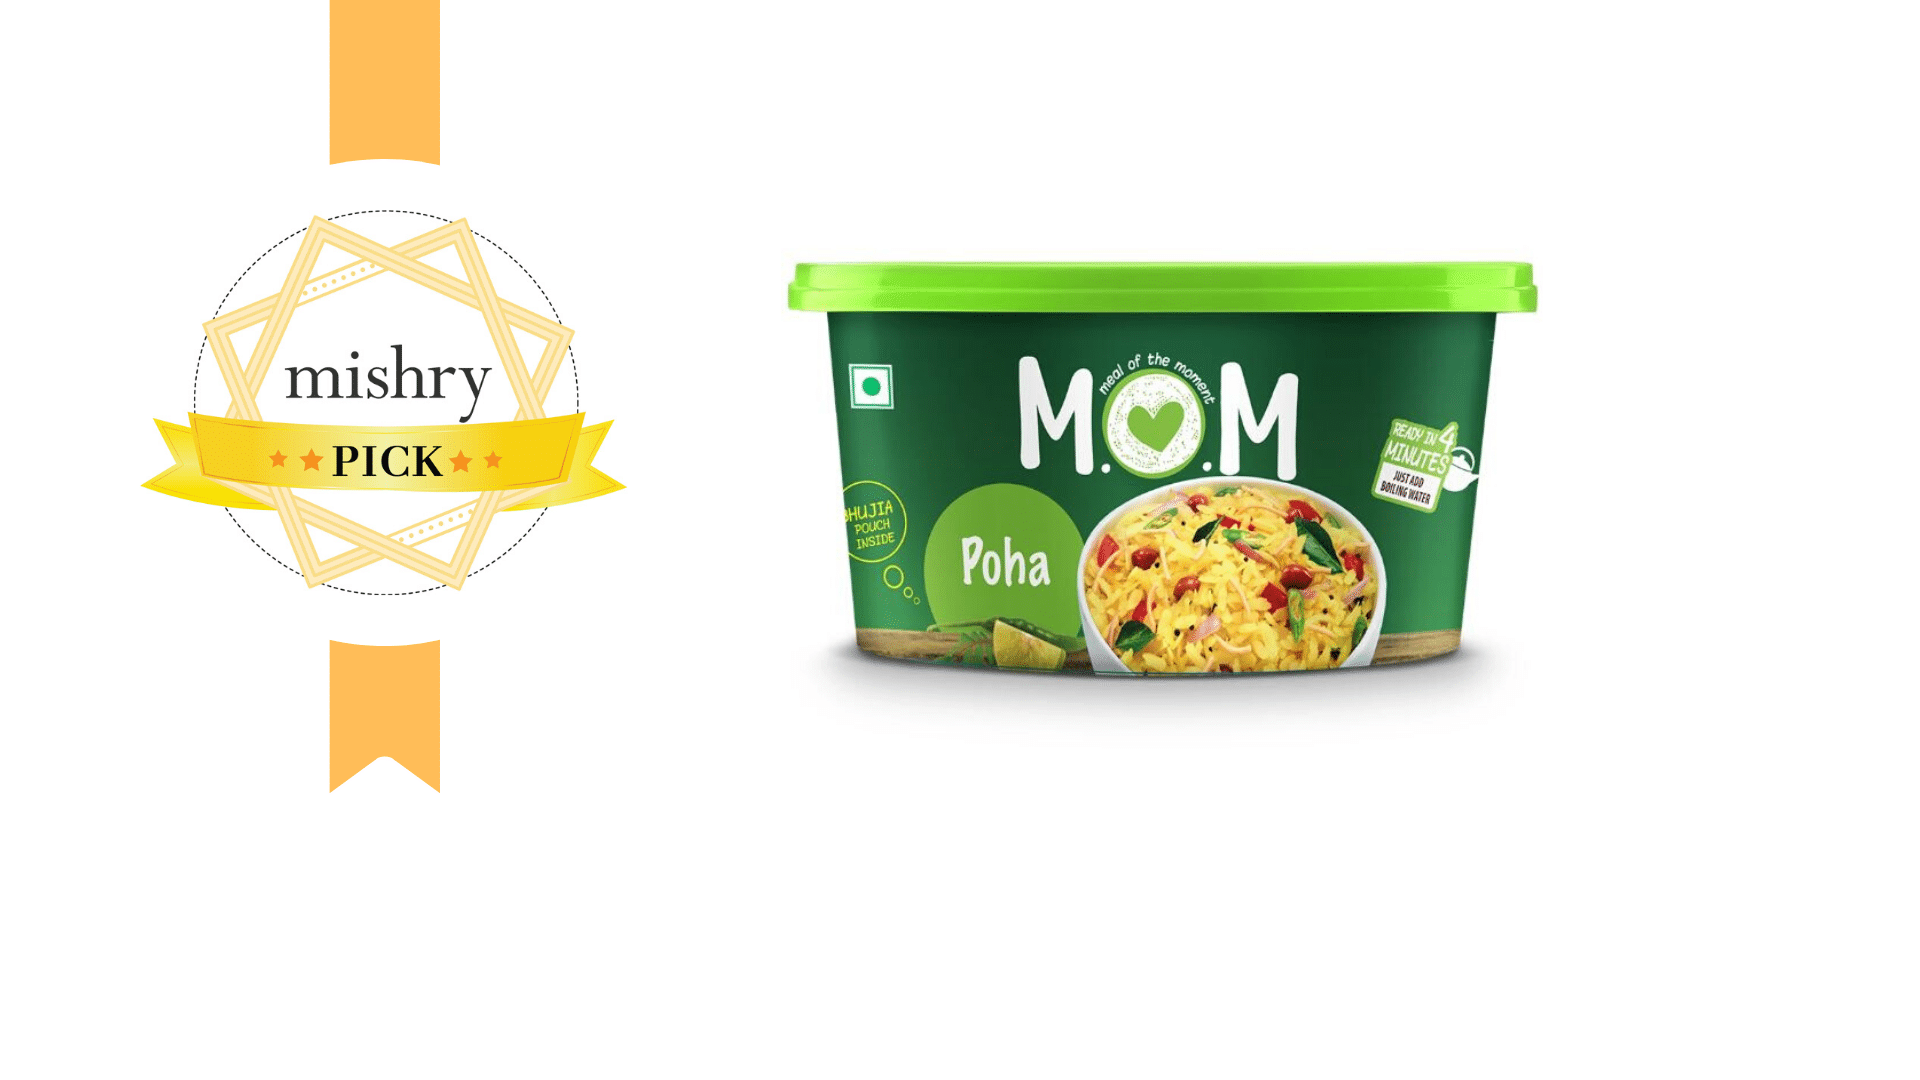 M.O.M's Instant Poha-mishry